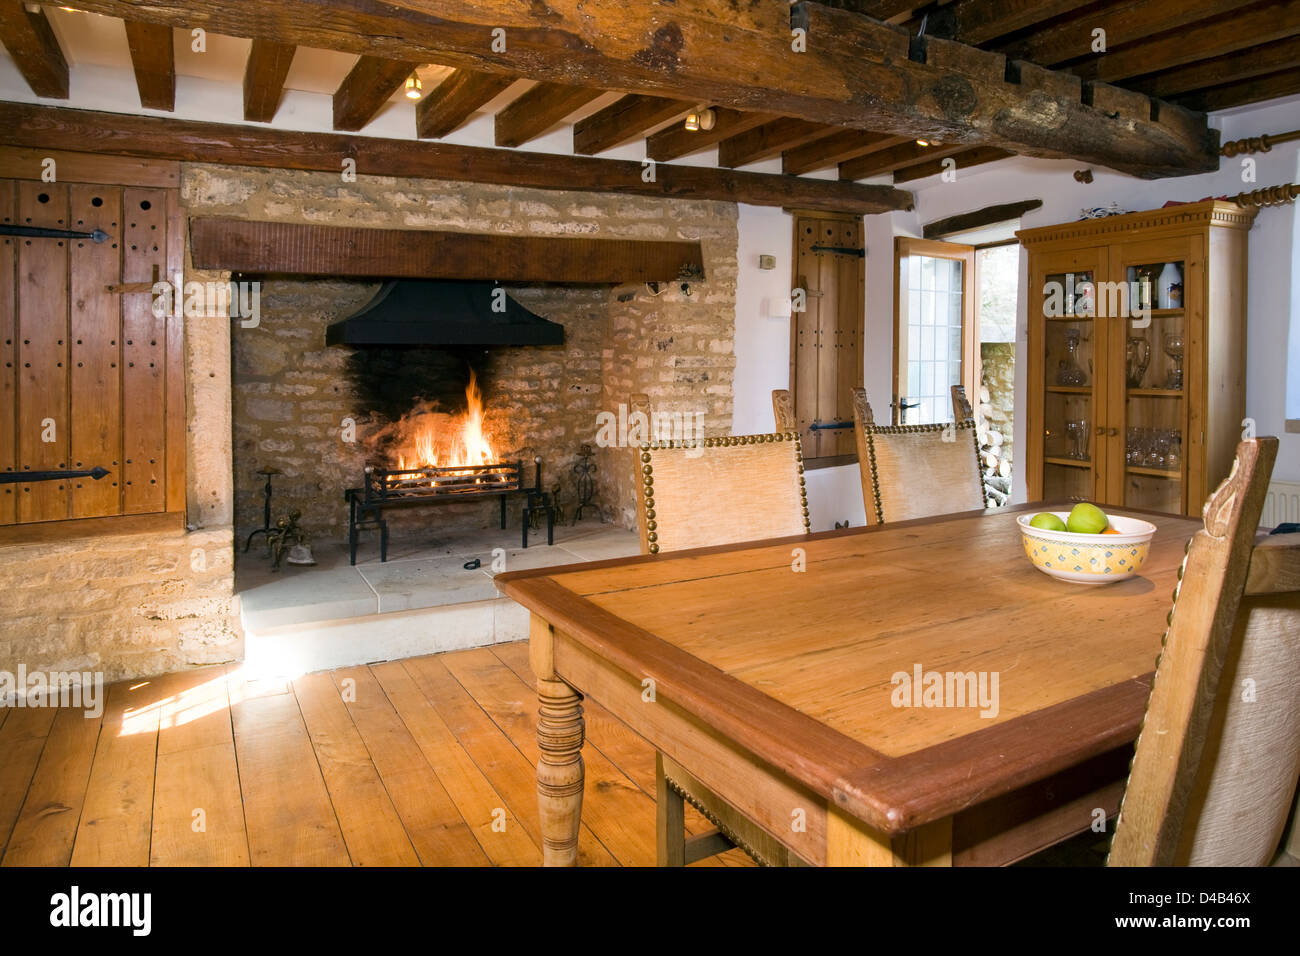 An arts and crafts style cottage dining room with a large fireplace. - Stock Image